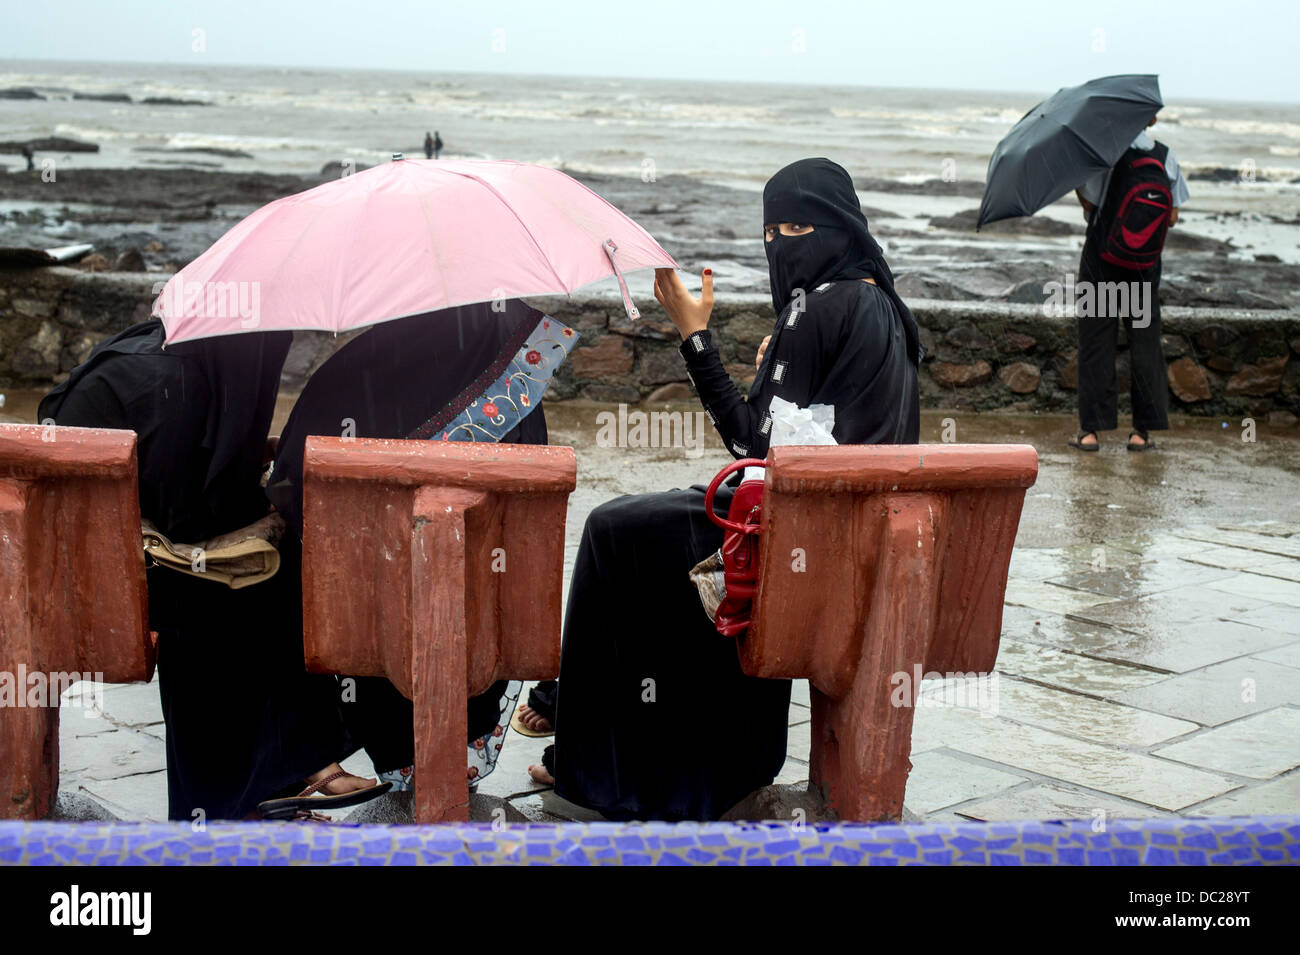 rains muslim girl personals Arain brides - find lakhs of arain muslim matrimonial brides, arain girls on matrimonialsindia,the no 1 arain muslim matrimony site to meet arain brides from all divisions of muslim community.